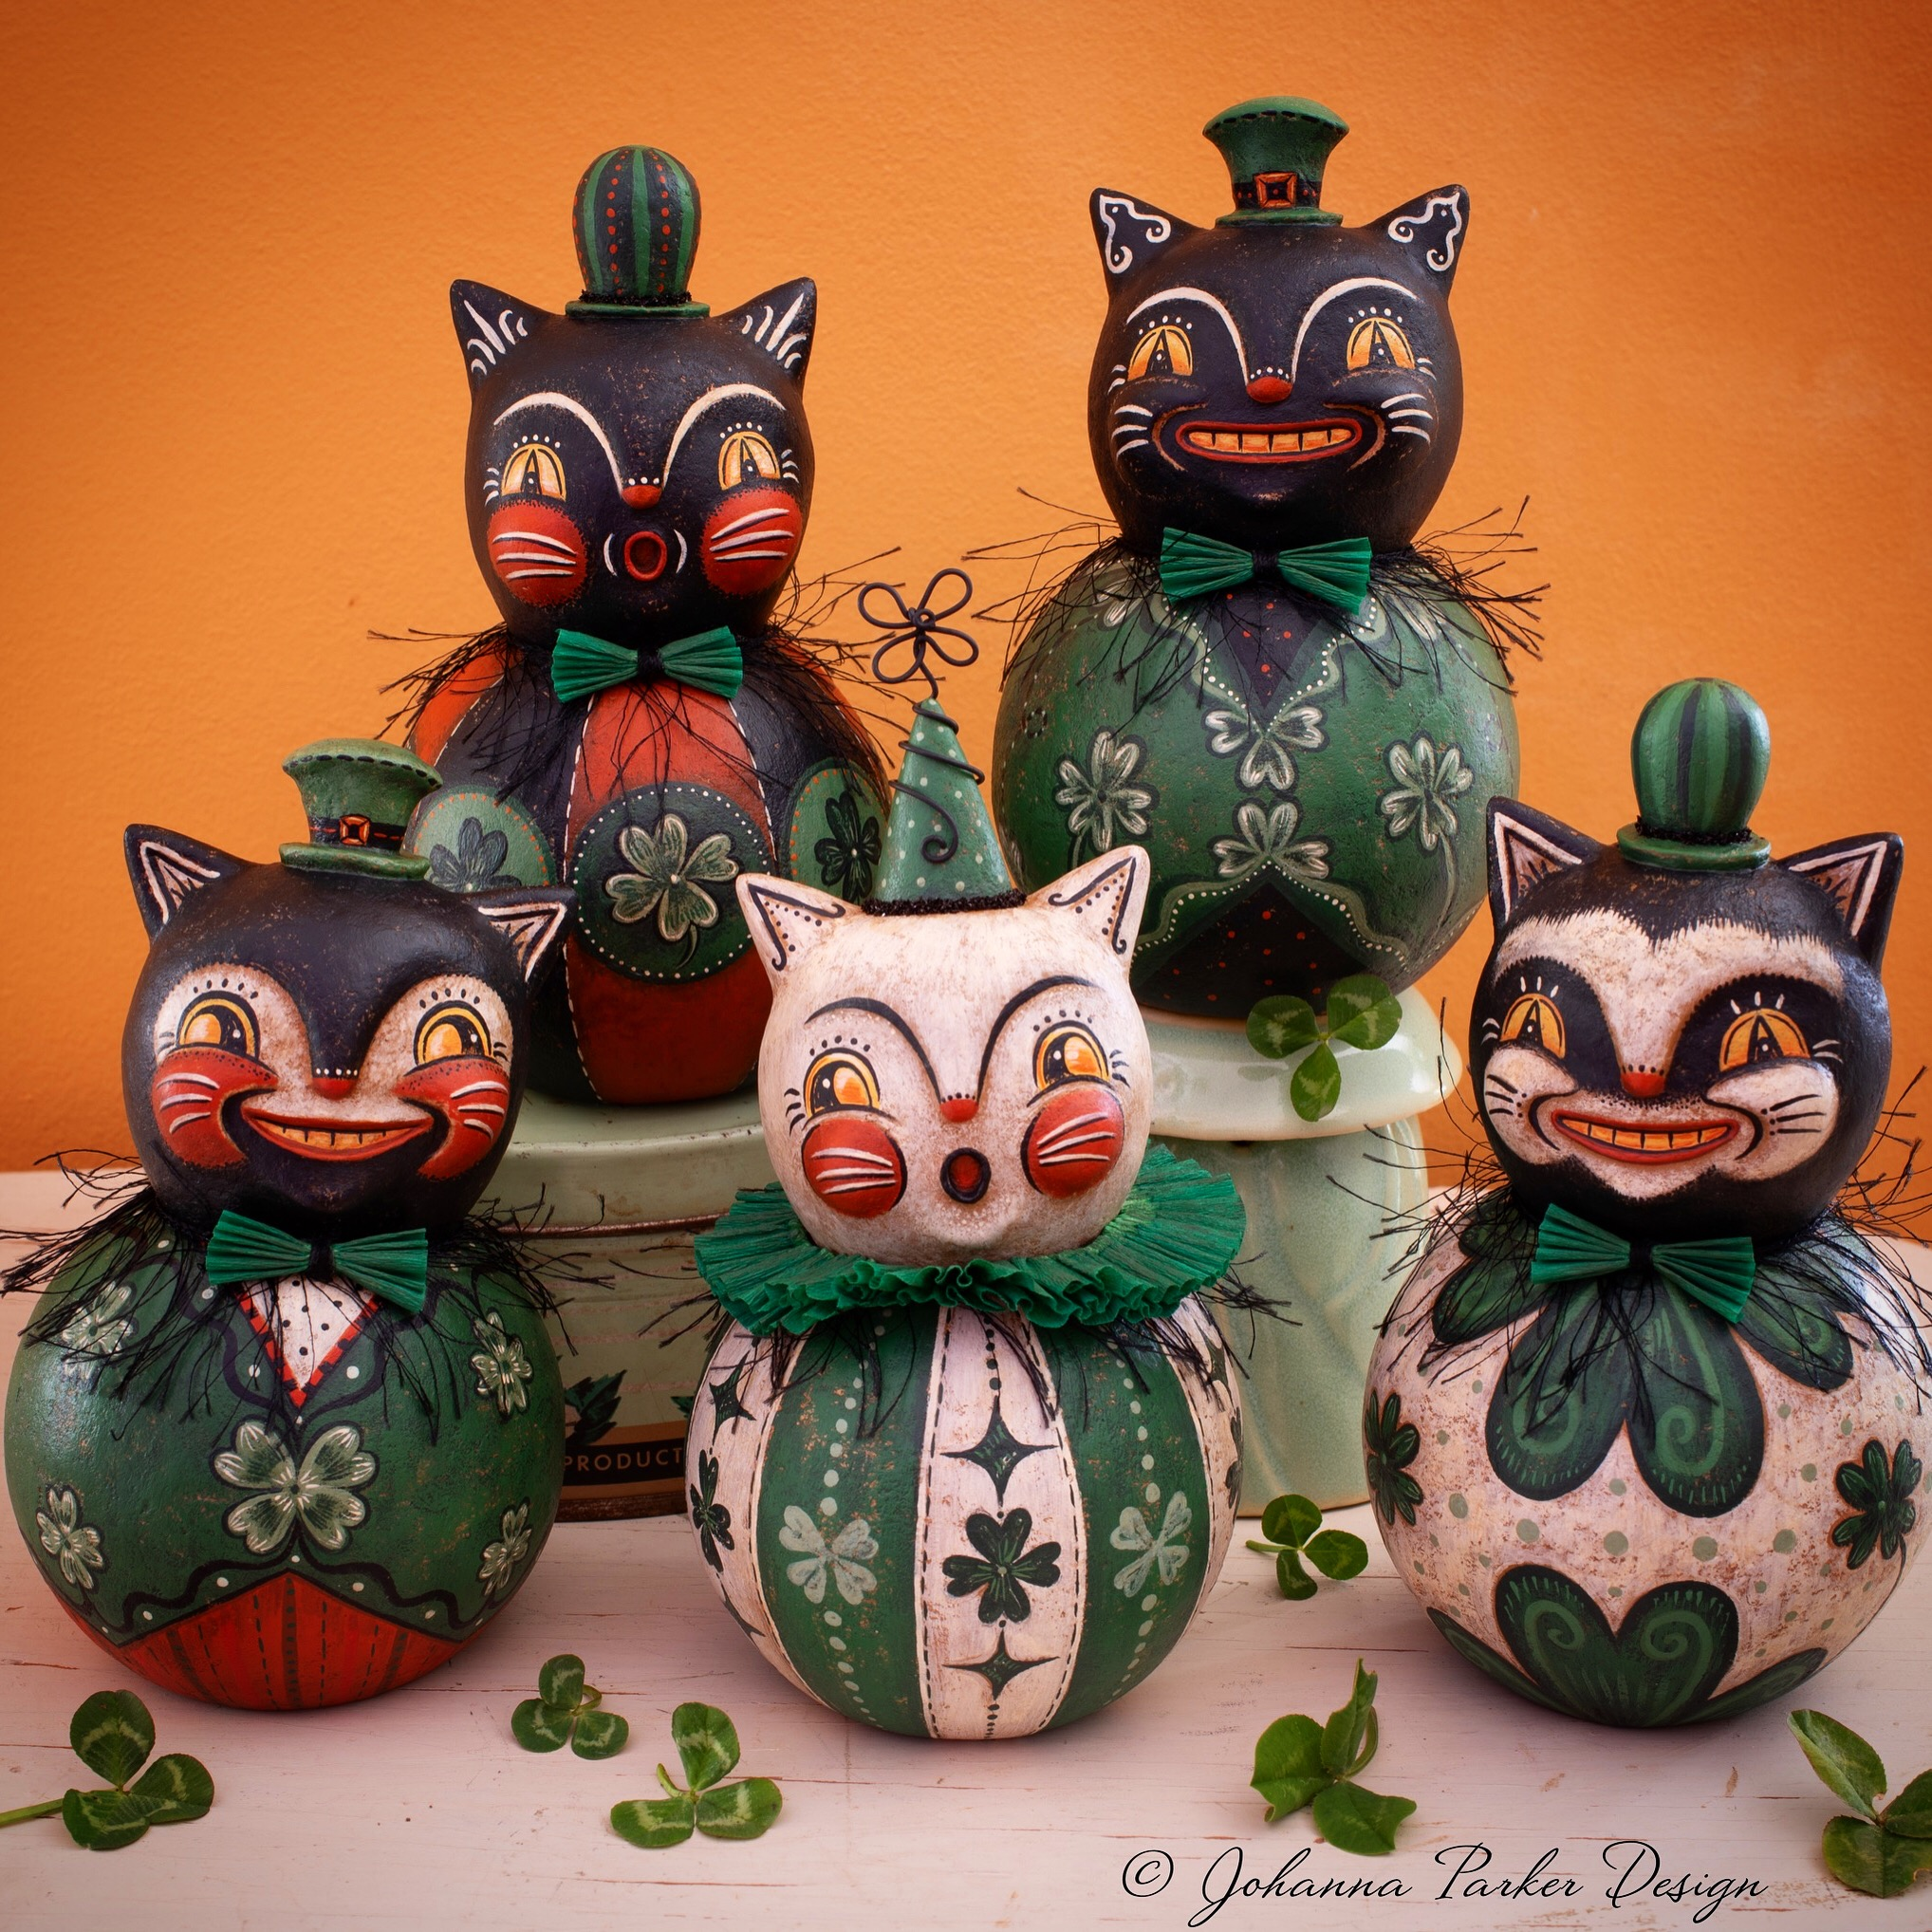 Johanna-Parker-St-Cattys-Folk-Art-Collection.JPG